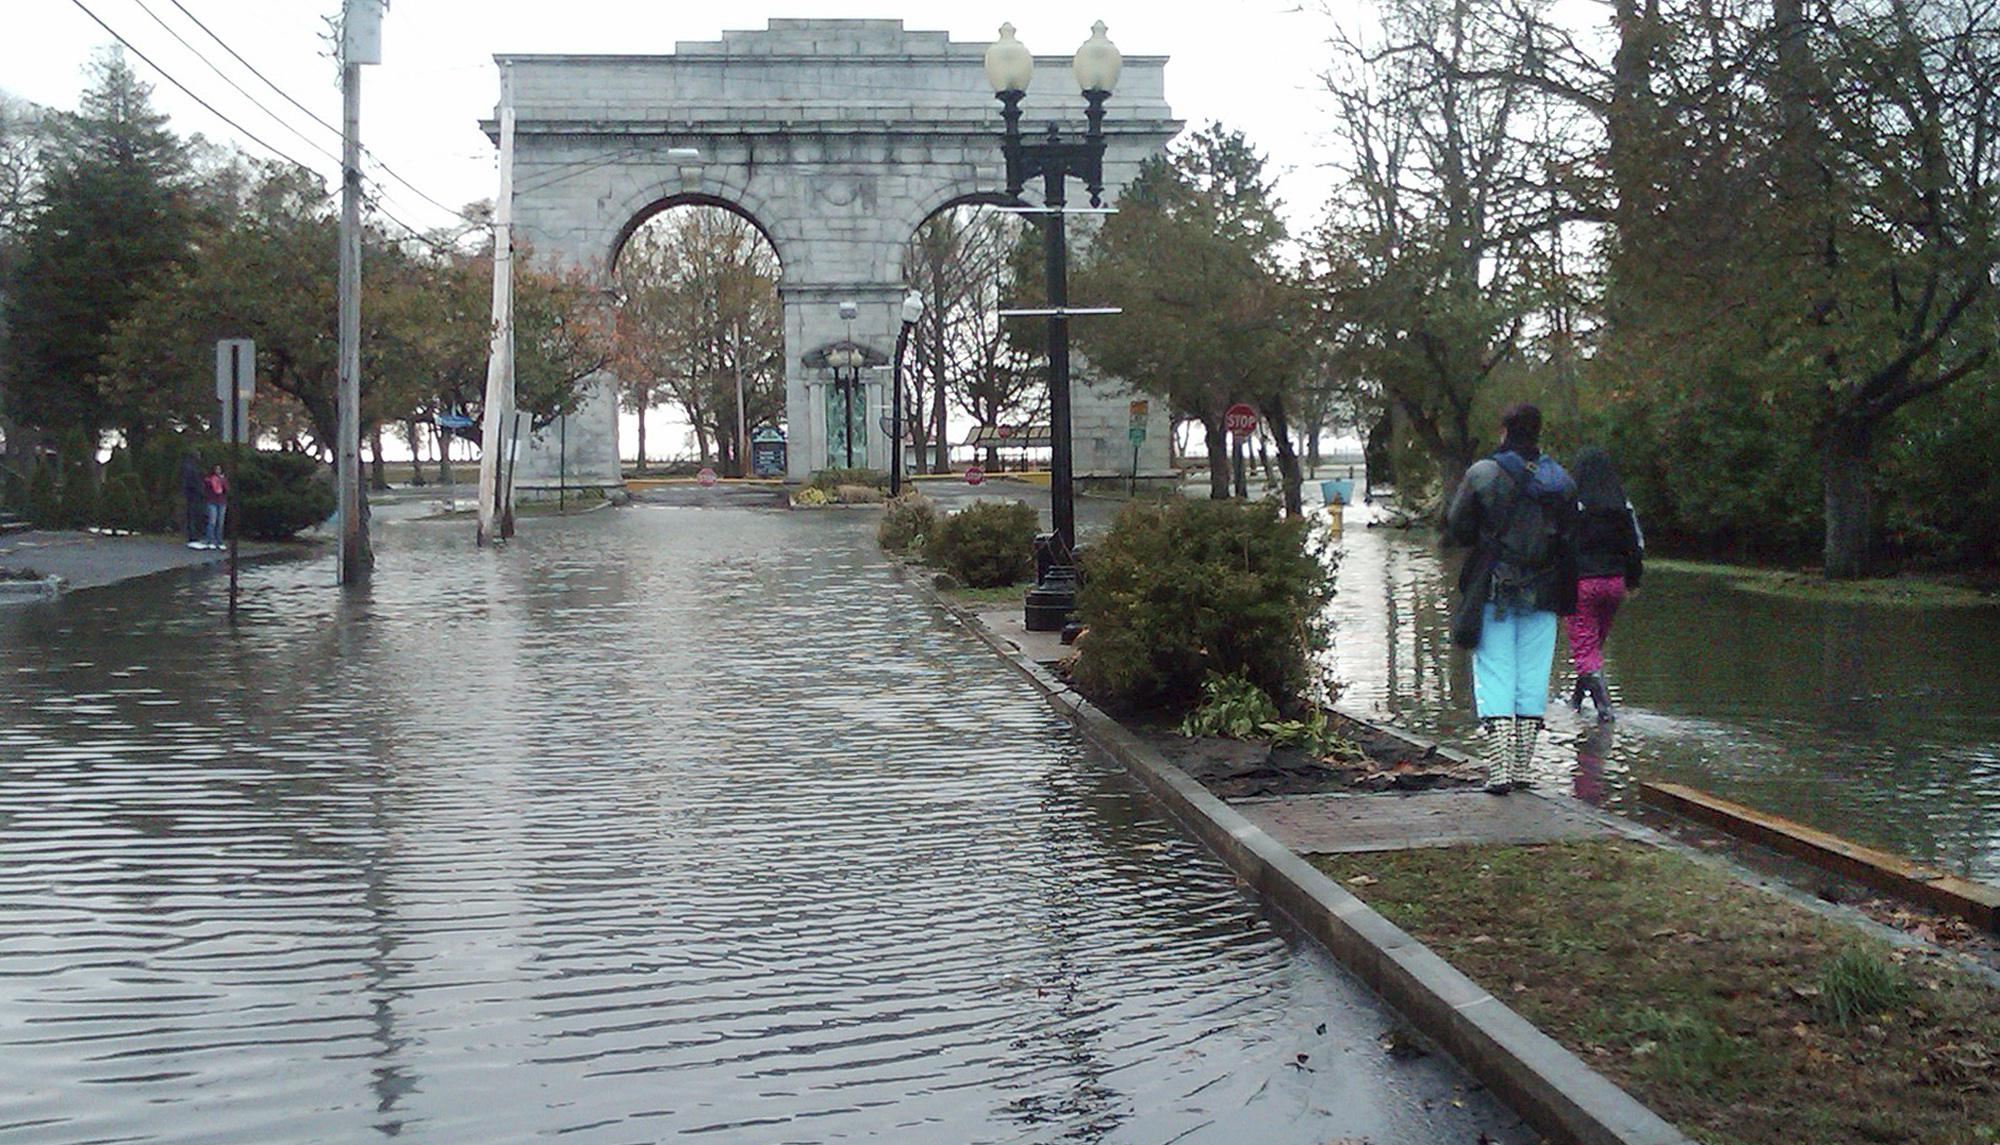 Bridgeport building barriers after swamped by stormwaters